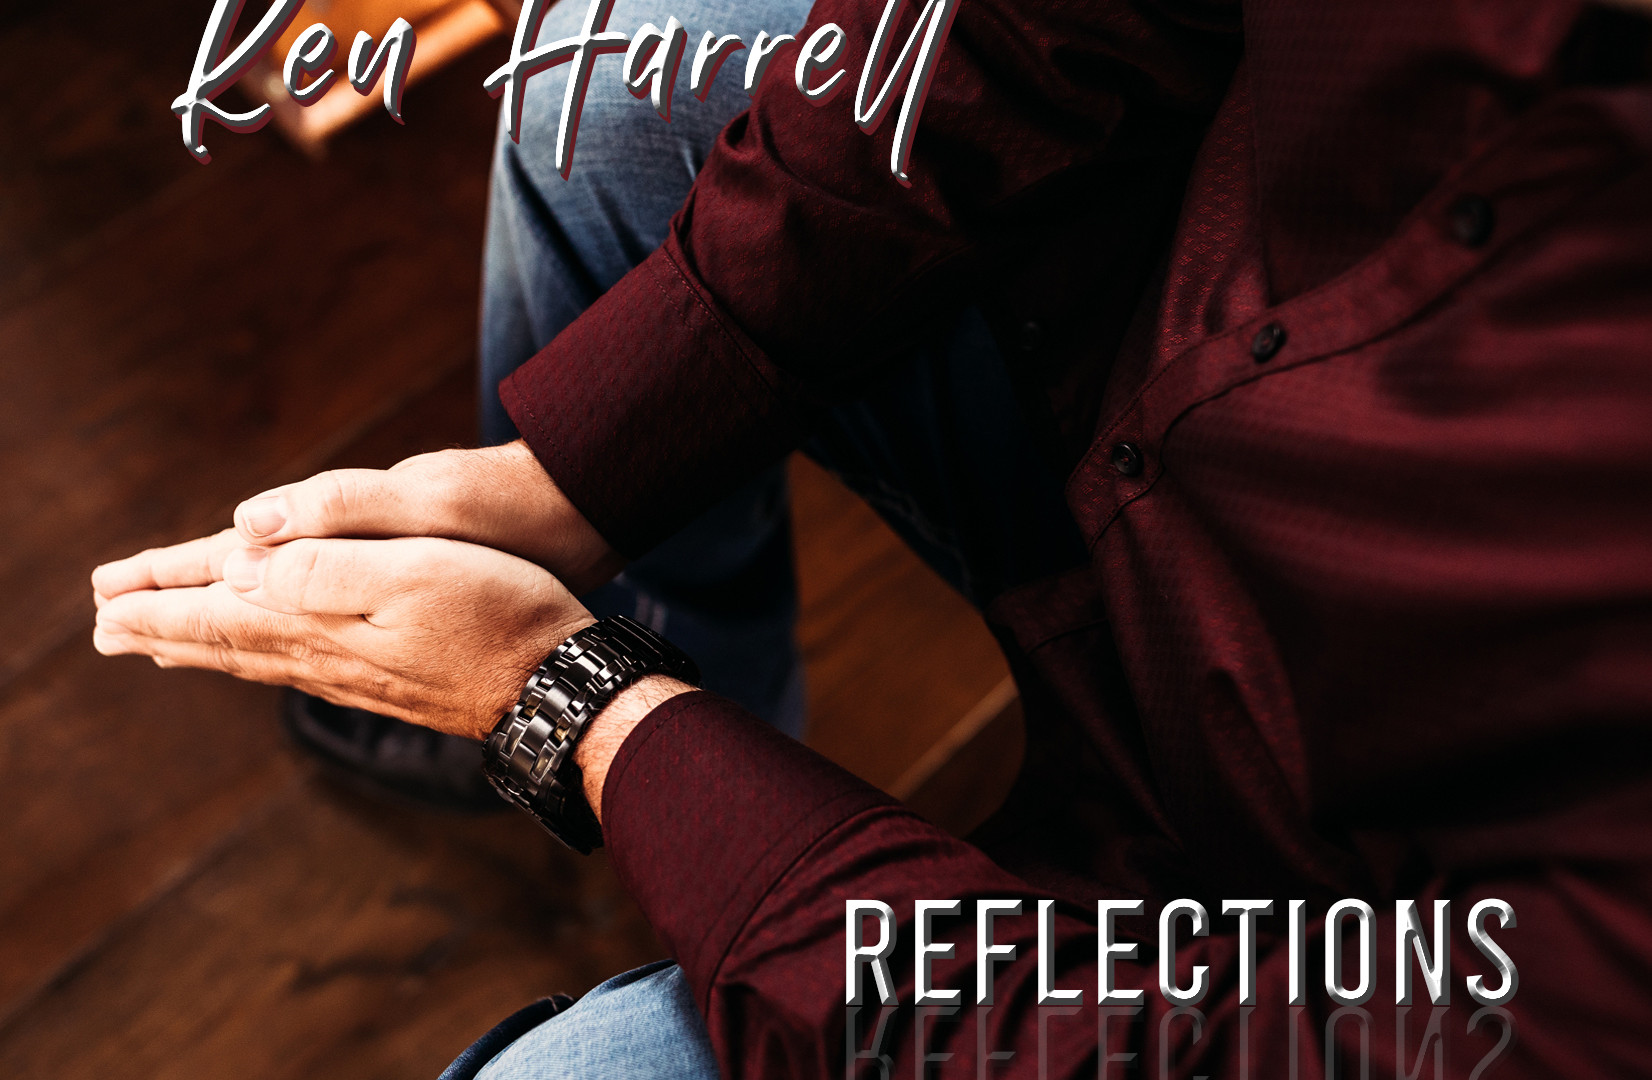 KEN HARRELL - REFLECTIONS cd cover.jpg